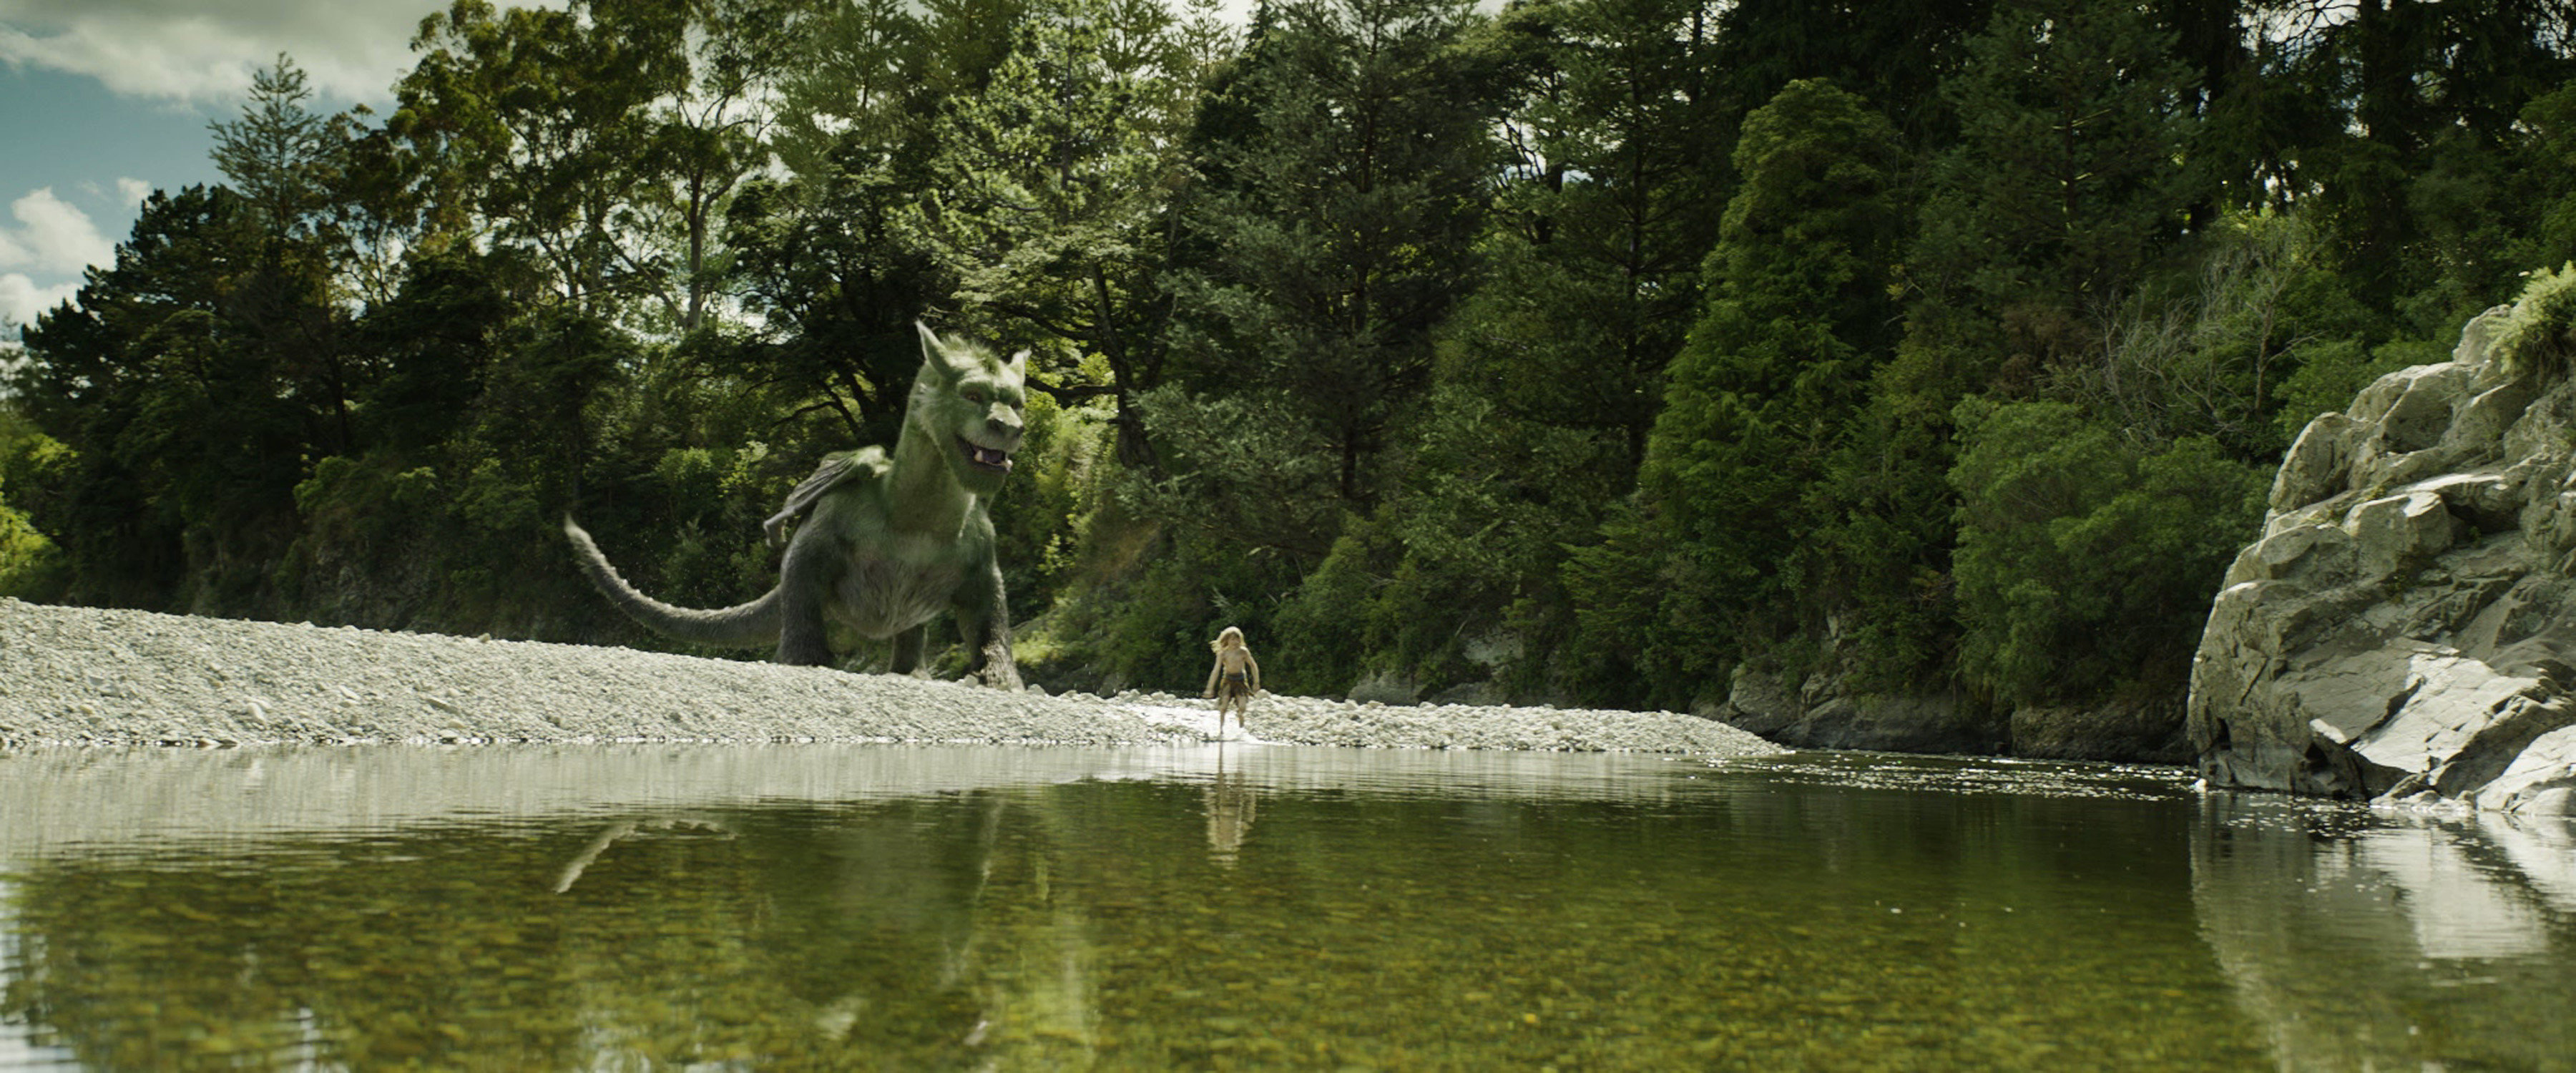 A re-imagining of Disney's cherished film, PETE'S DRAGON is the story of a boy named Pete (Oakes Fegley) and his best friend Elliot, who just happens to be a dragon. Photo Credit: © 2016 Disney Enterprises, Inc. All Rights Reserved.